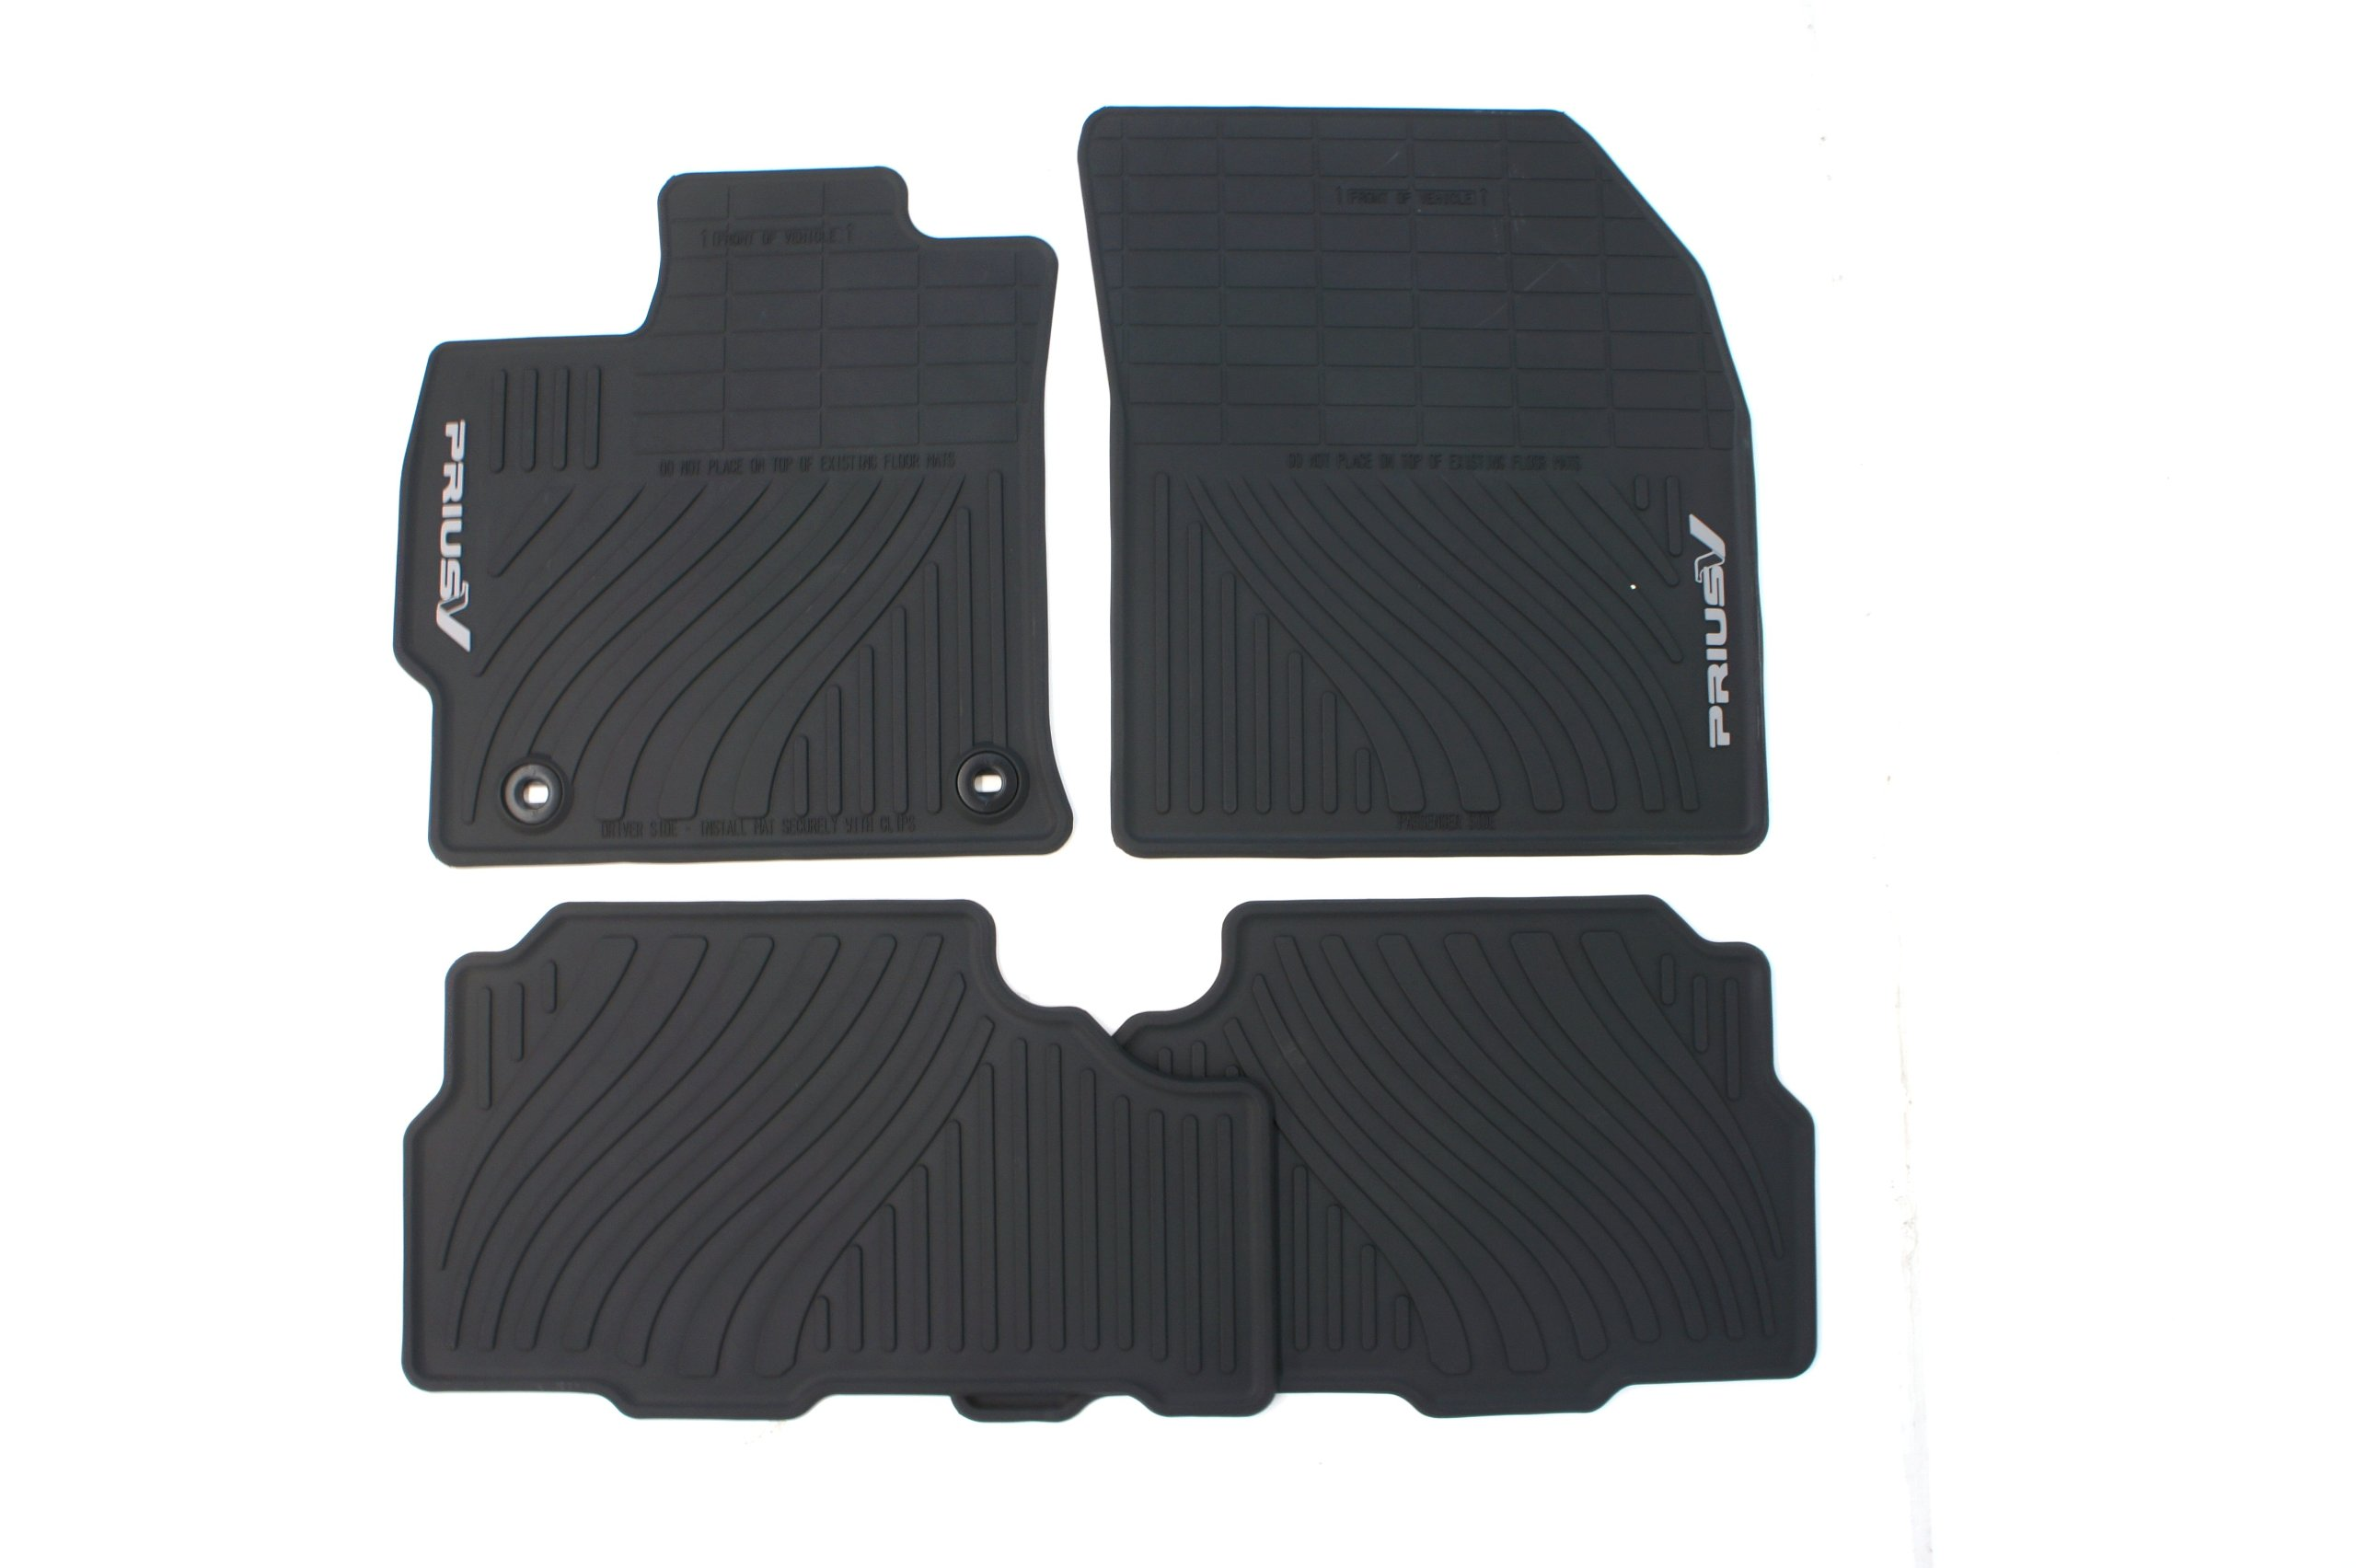 1992 1987 1989 1985 1993 GGBAILEY D2983A-F1A-CH-BR Custom Fit Automotive Carpet Floor Mats for 1984 1988 1991 1990 1994 Oldsmobile Cutlass Ciera Wagon Brown Driver /& Passenger 1986